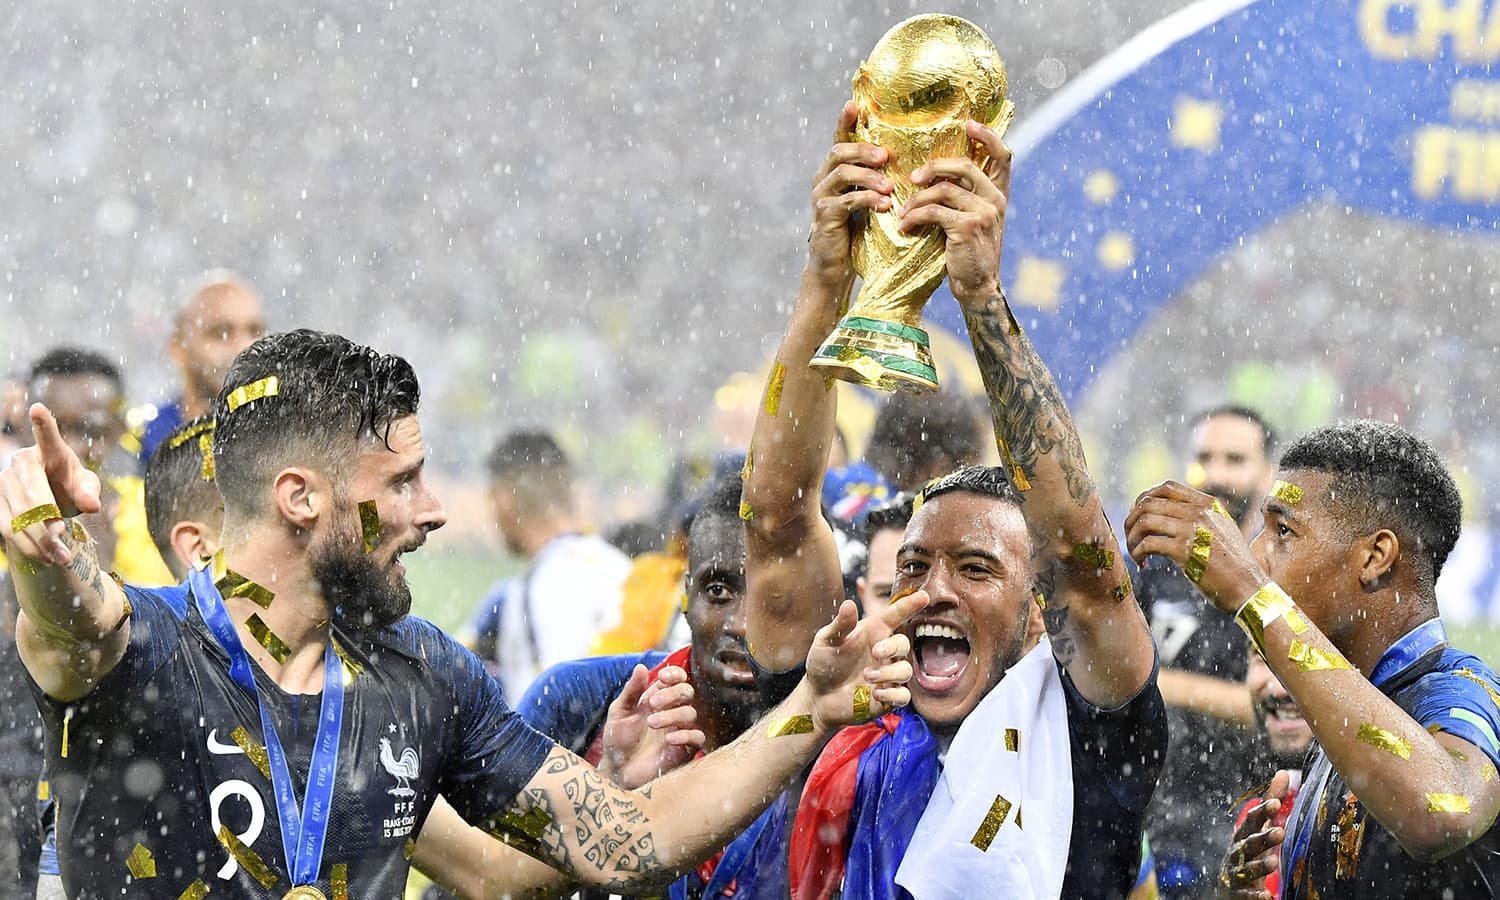 France's Olivier Giroud, left, and France's Corentin Tolisso, centre, celebrate after winning 4-2 in the final match between France and Croatia. — AP